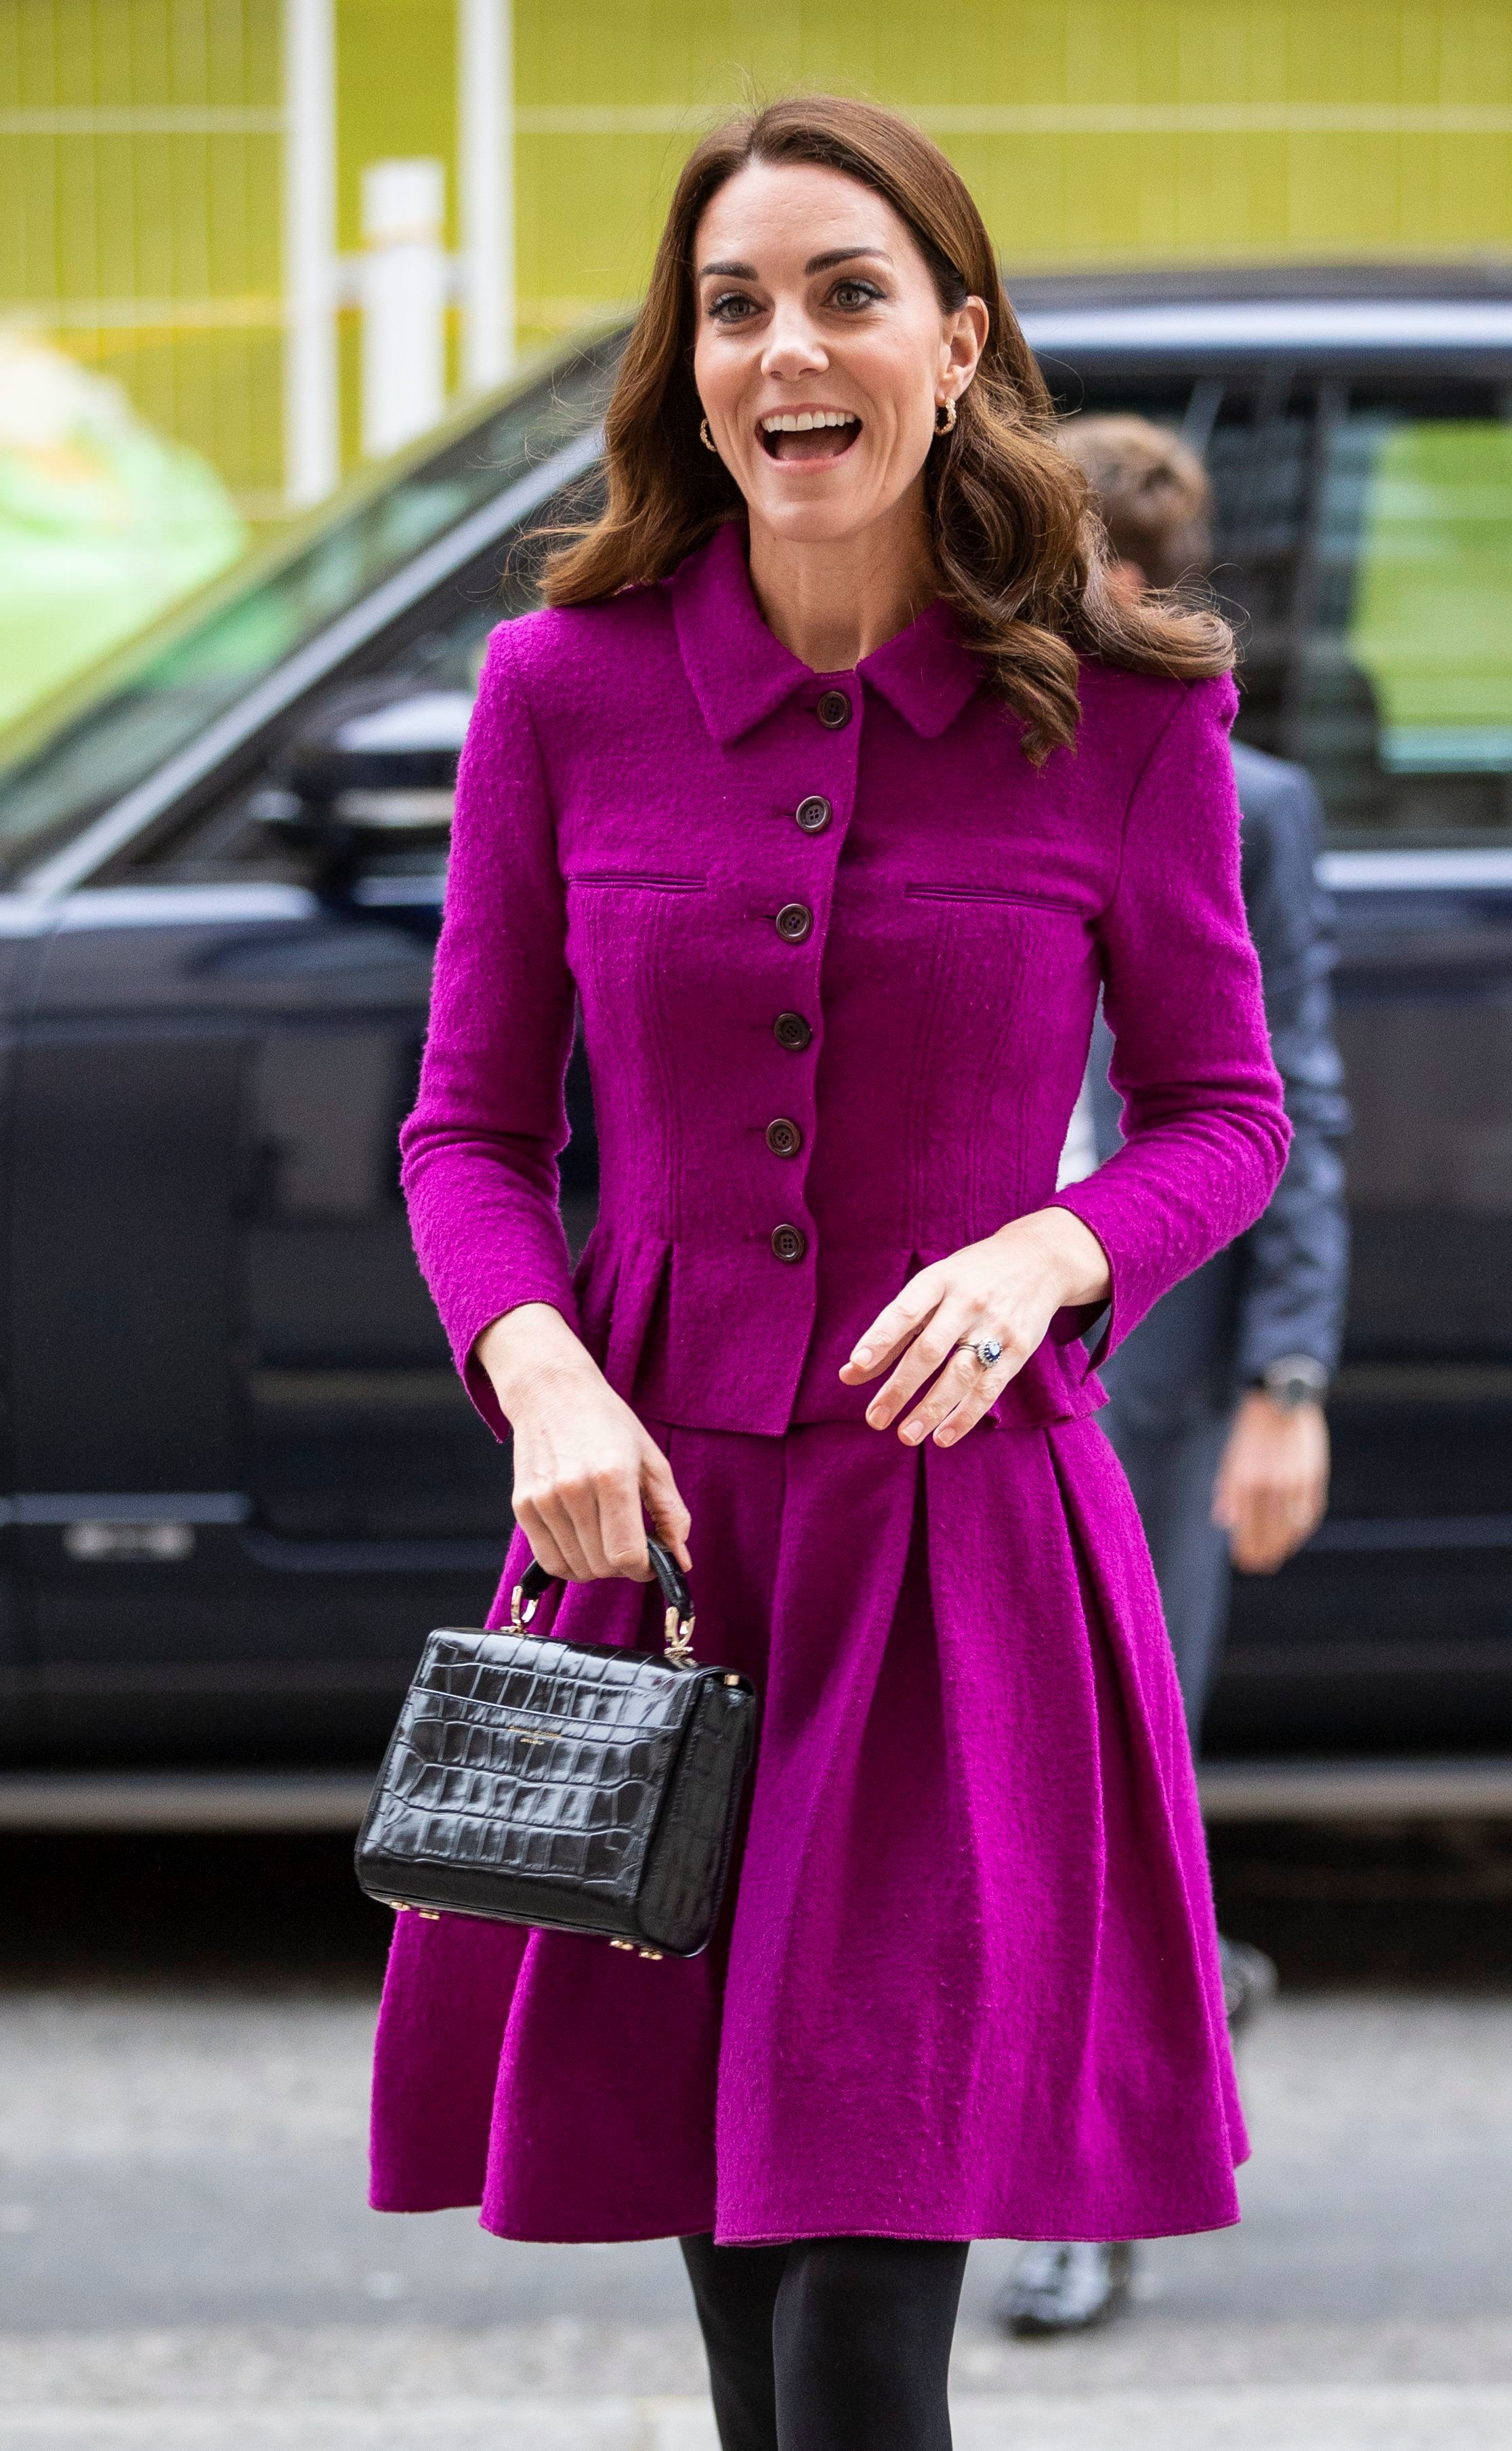 Duchess Kate visits the Royal Opera House in London on Jan. 16, 2019.